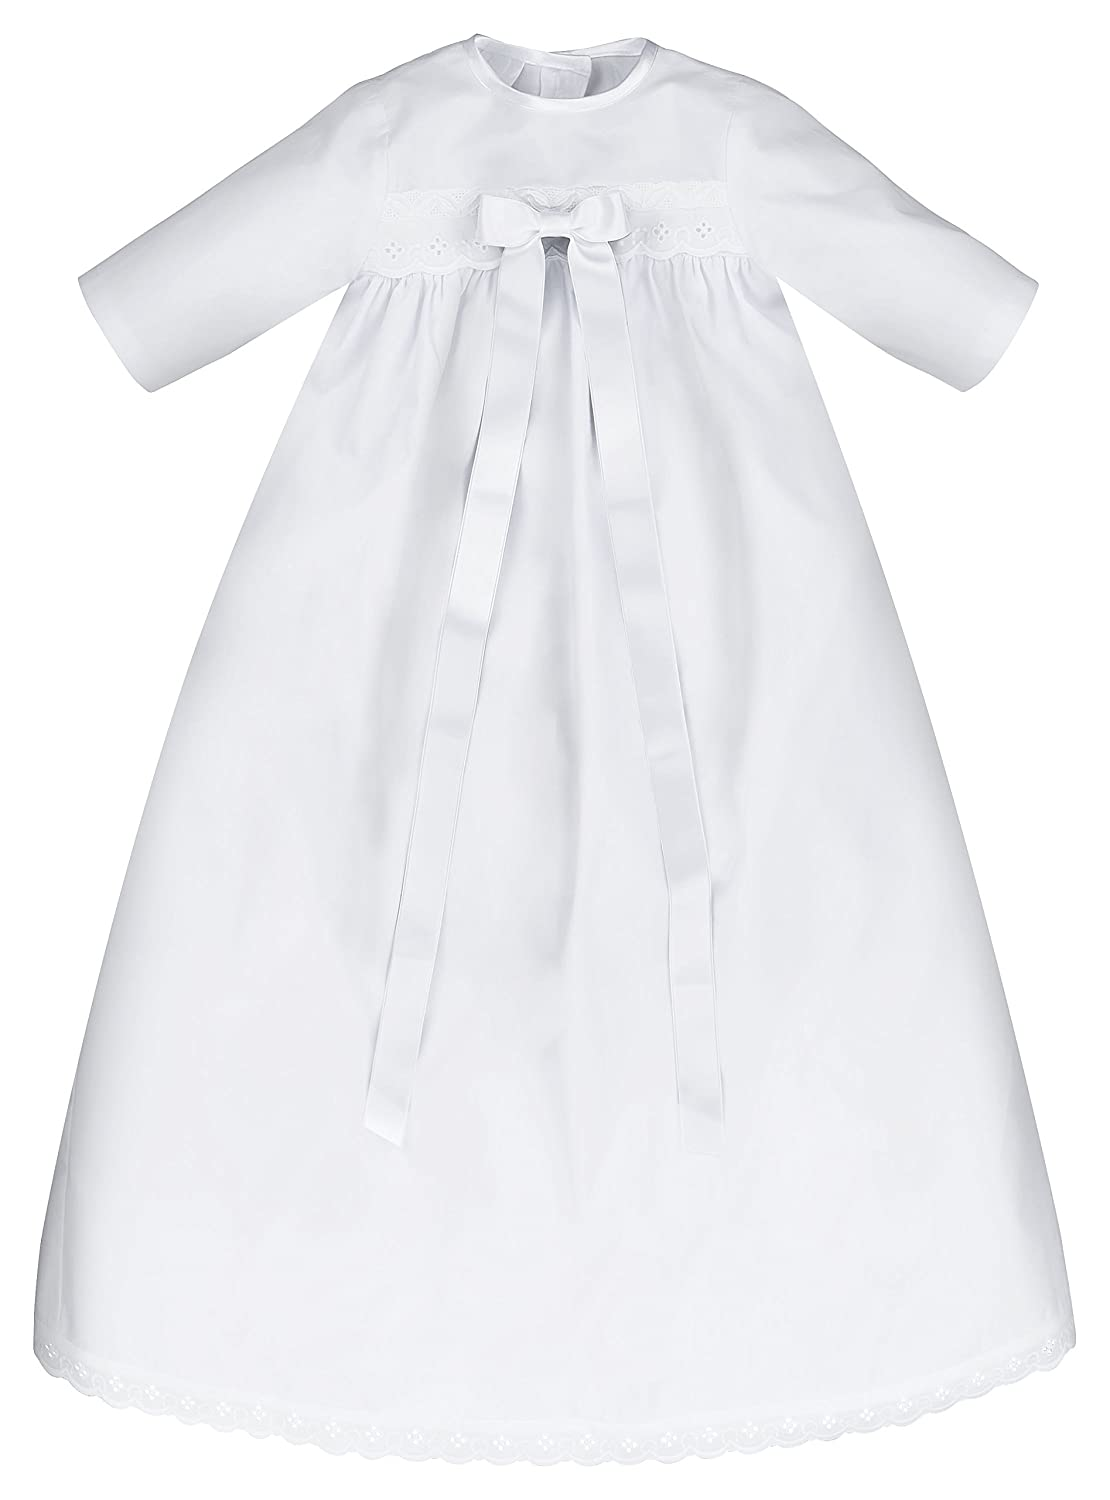 Bateo Design Baby Christening Dress – Boy Sascha